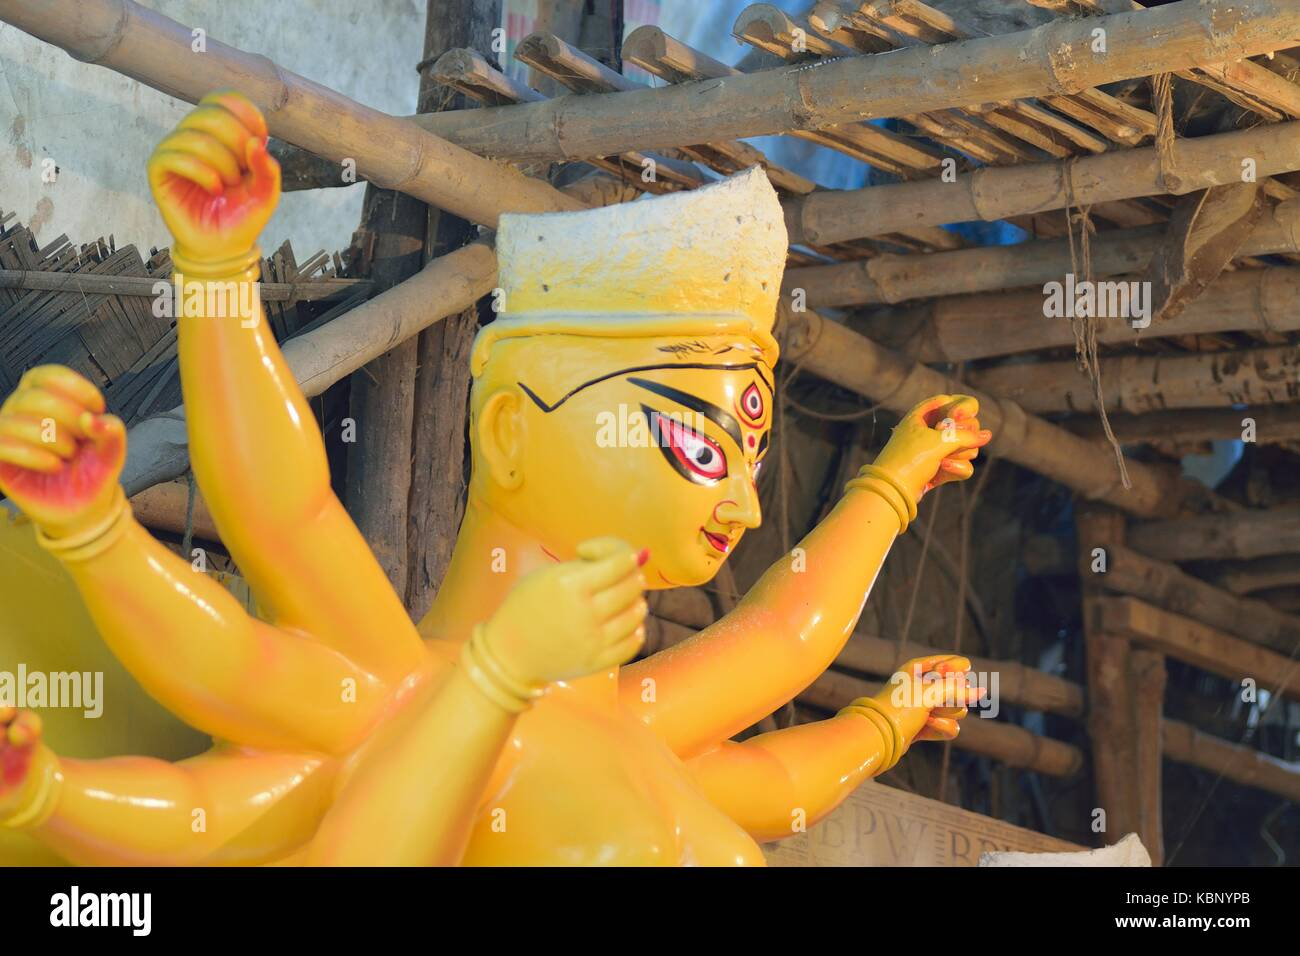 Clay idol of Goddess Durga under preparation for Durga Puja festival in India - Stock Image